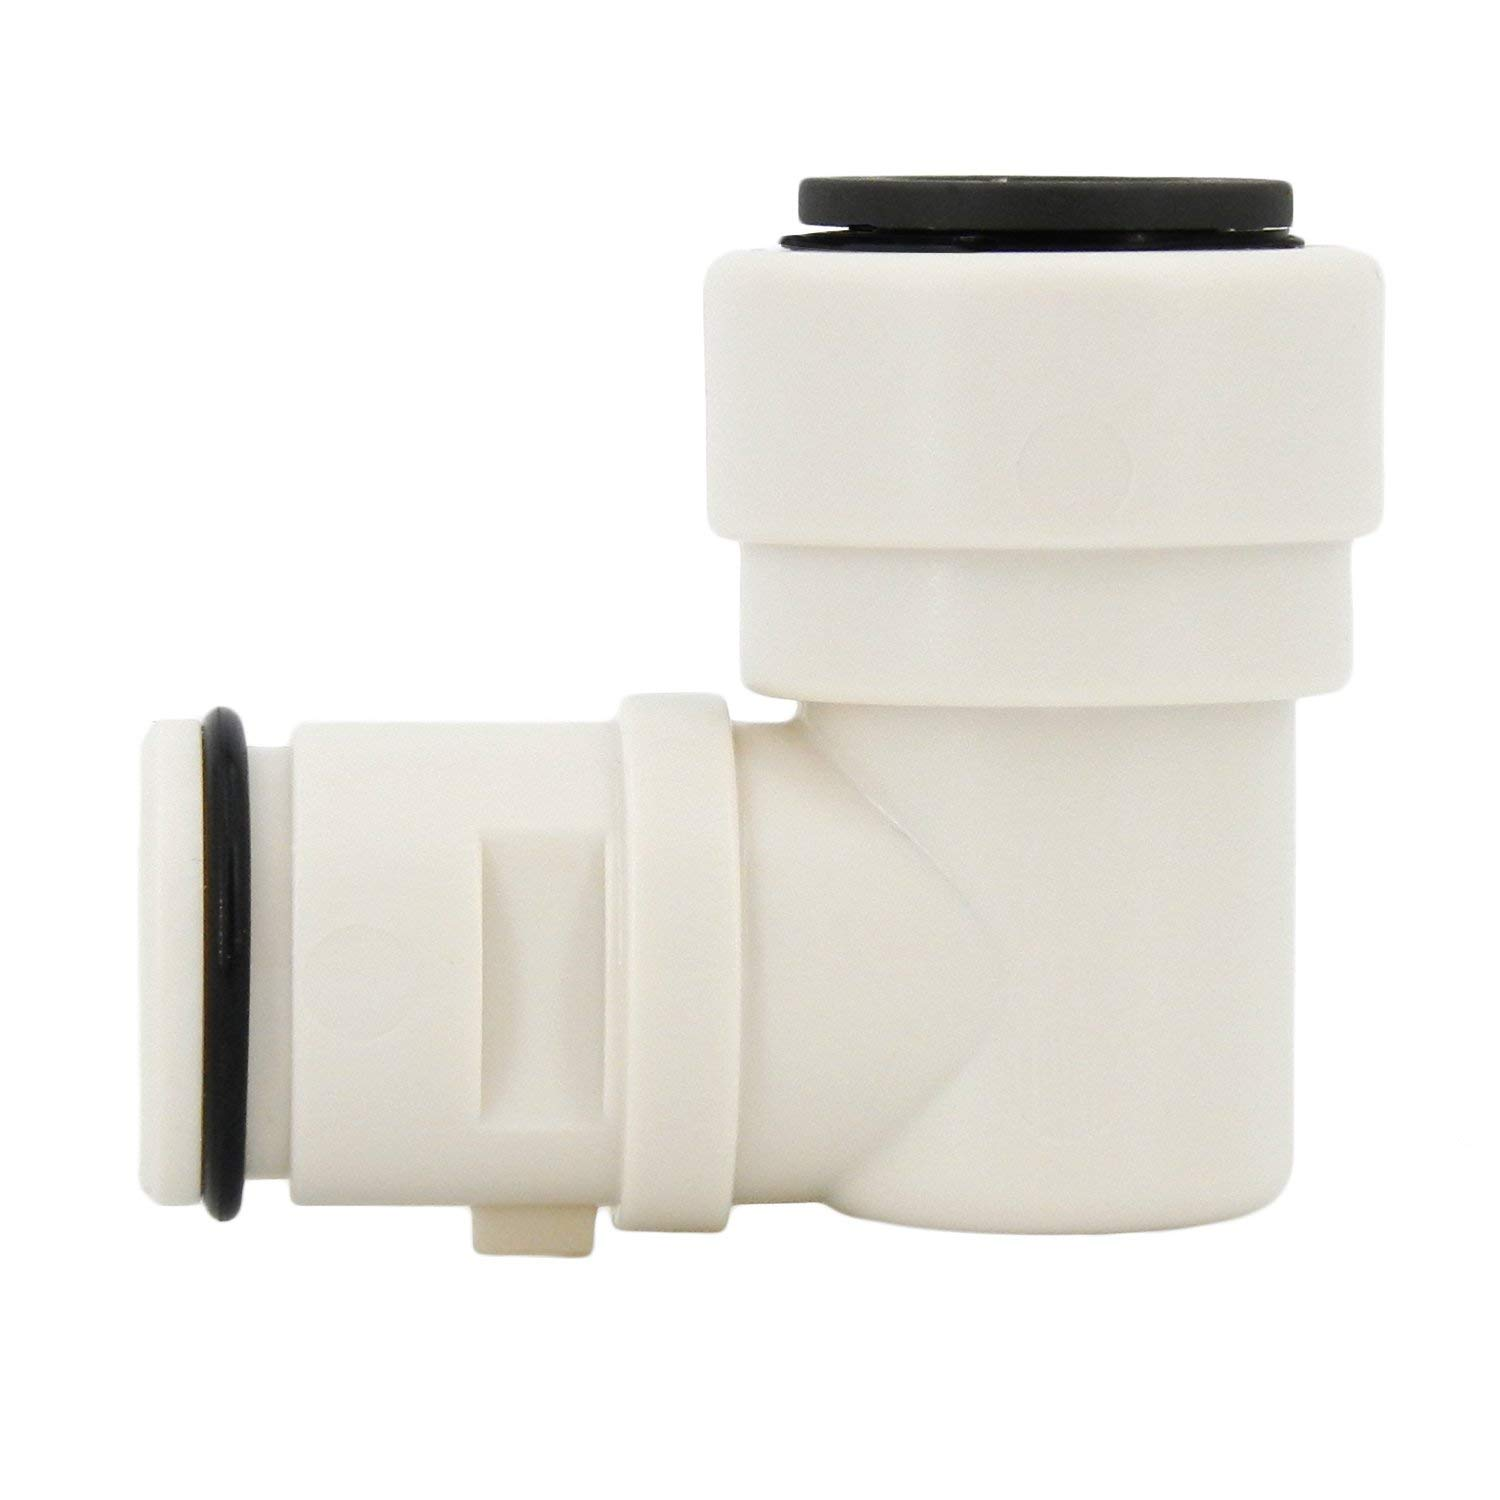 "Hydro-Logic 1/2"" Quick Connect Feed Fitting for Merlin GP & Evolution-RO1000, White"